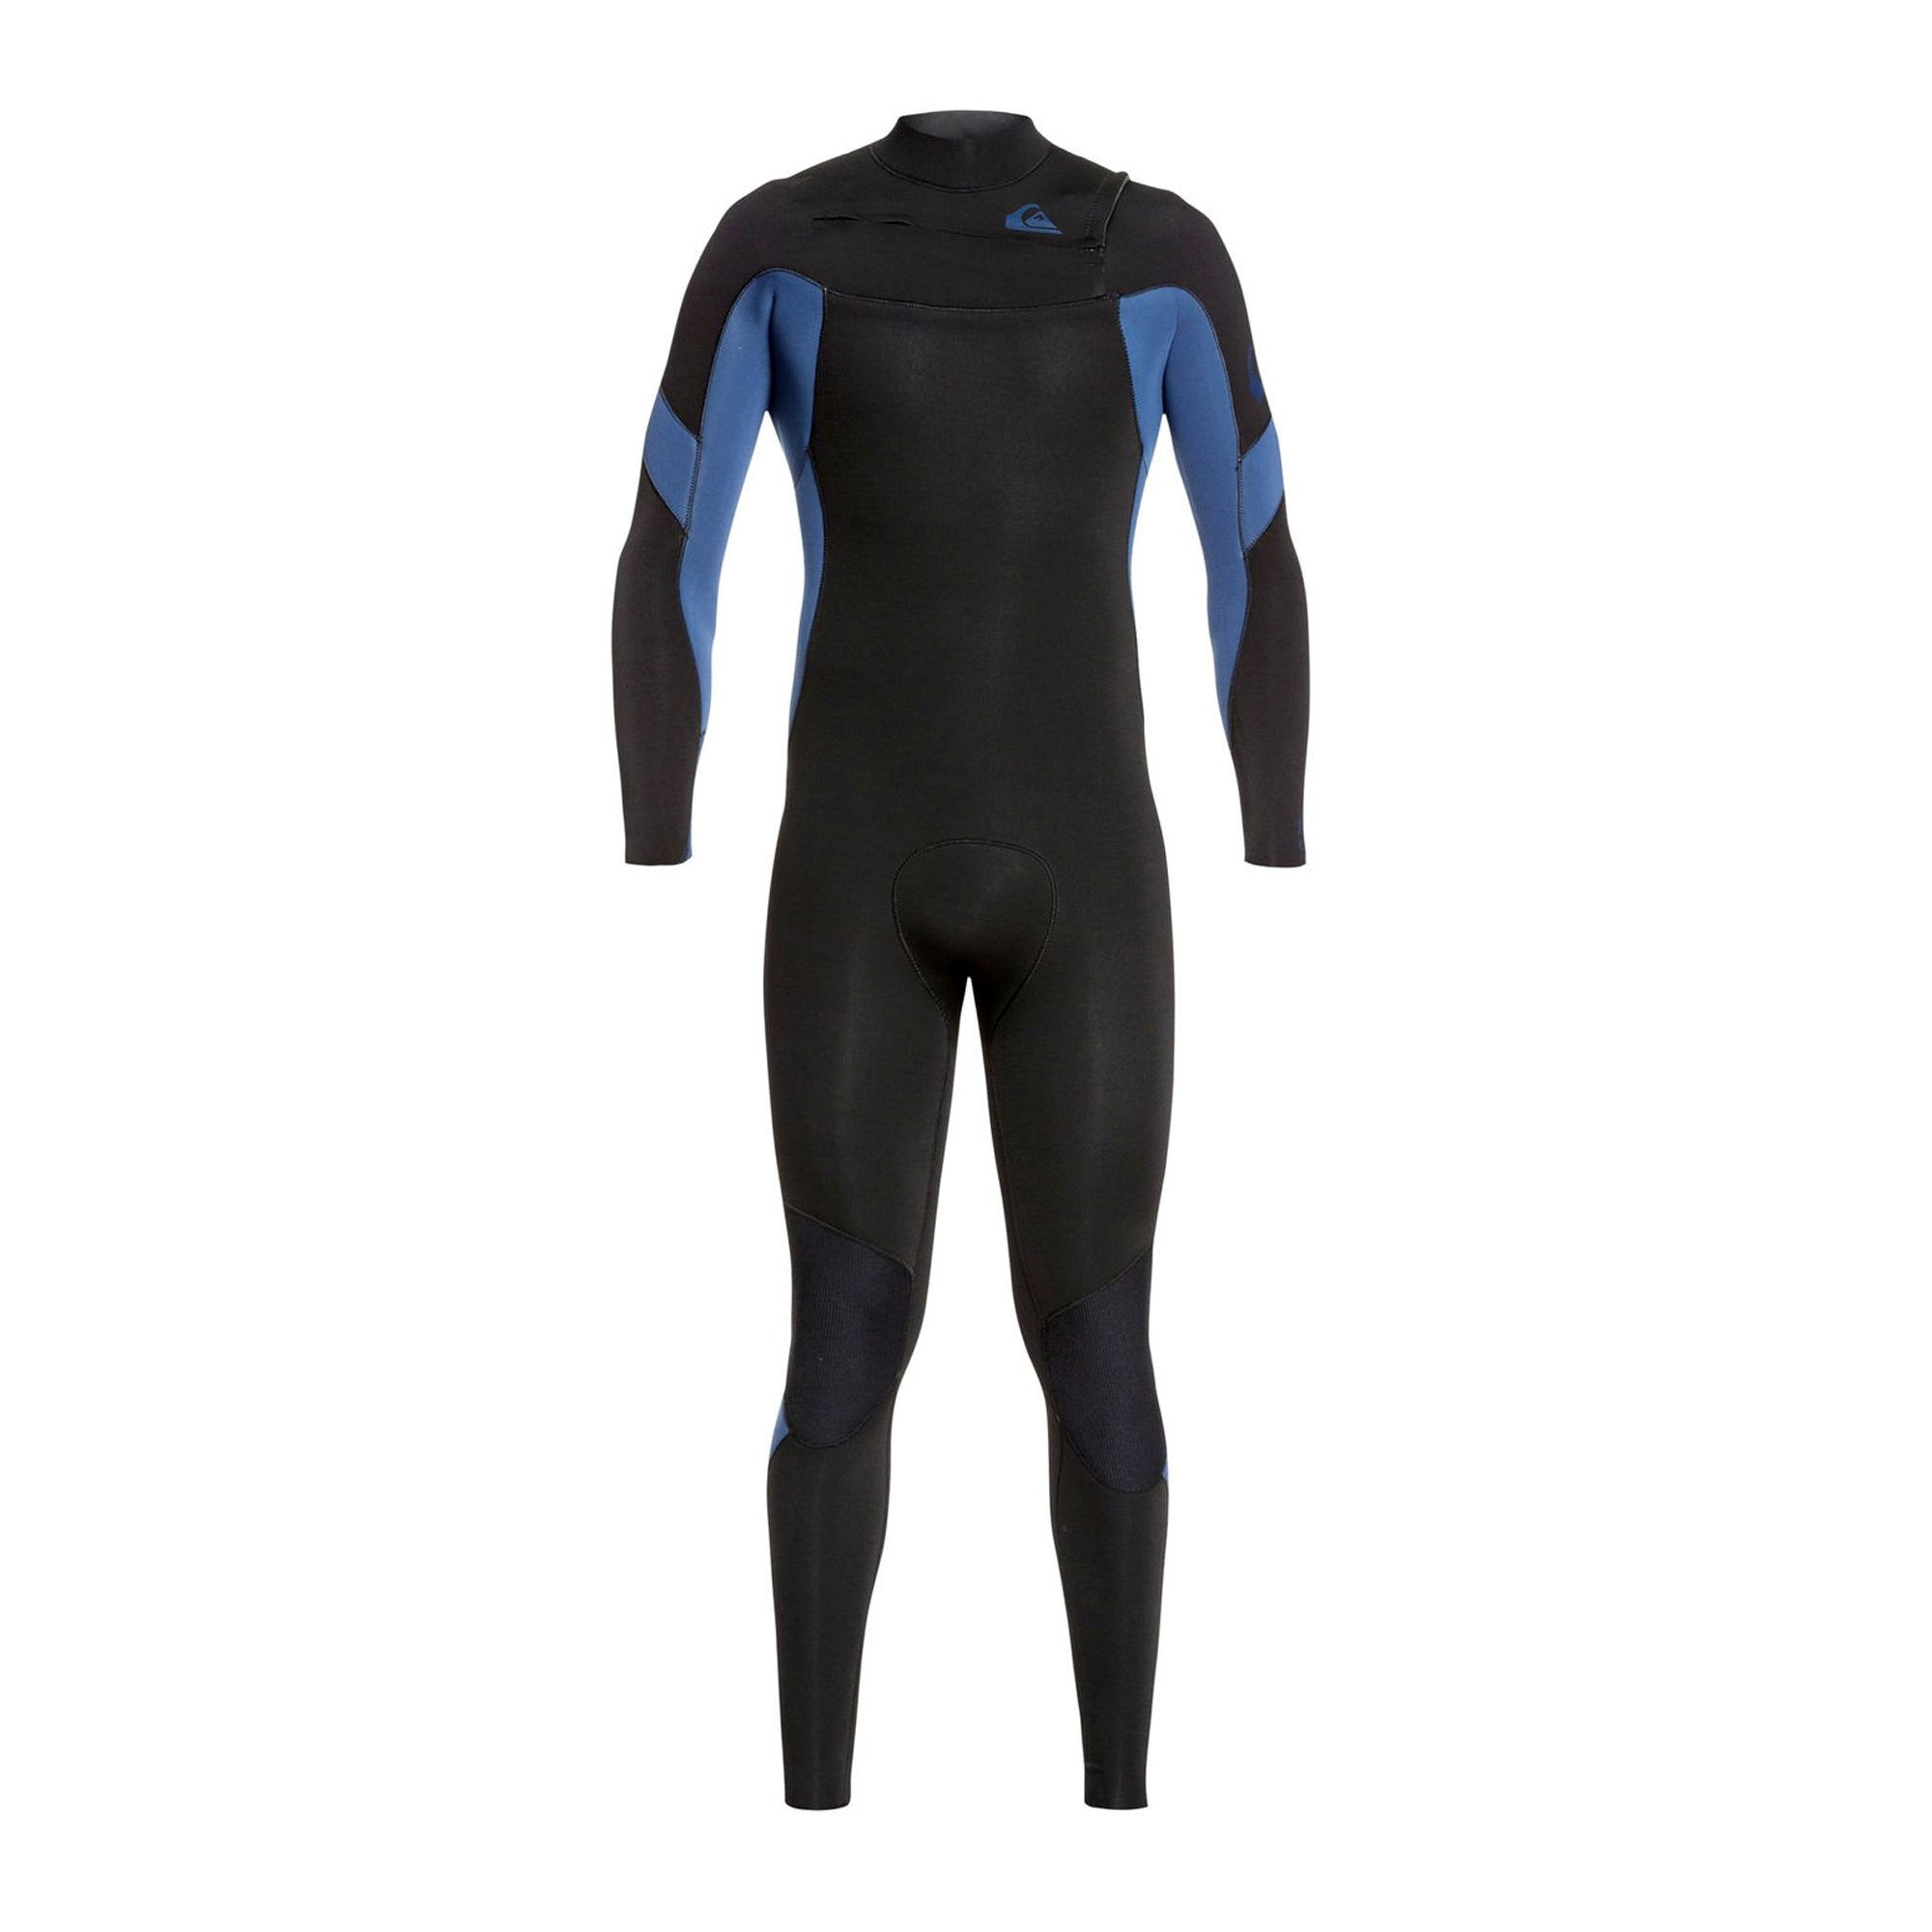 Quiksilver Syncro GBS 4/3 Chest Zip Men's Fullsuit Wetsuit